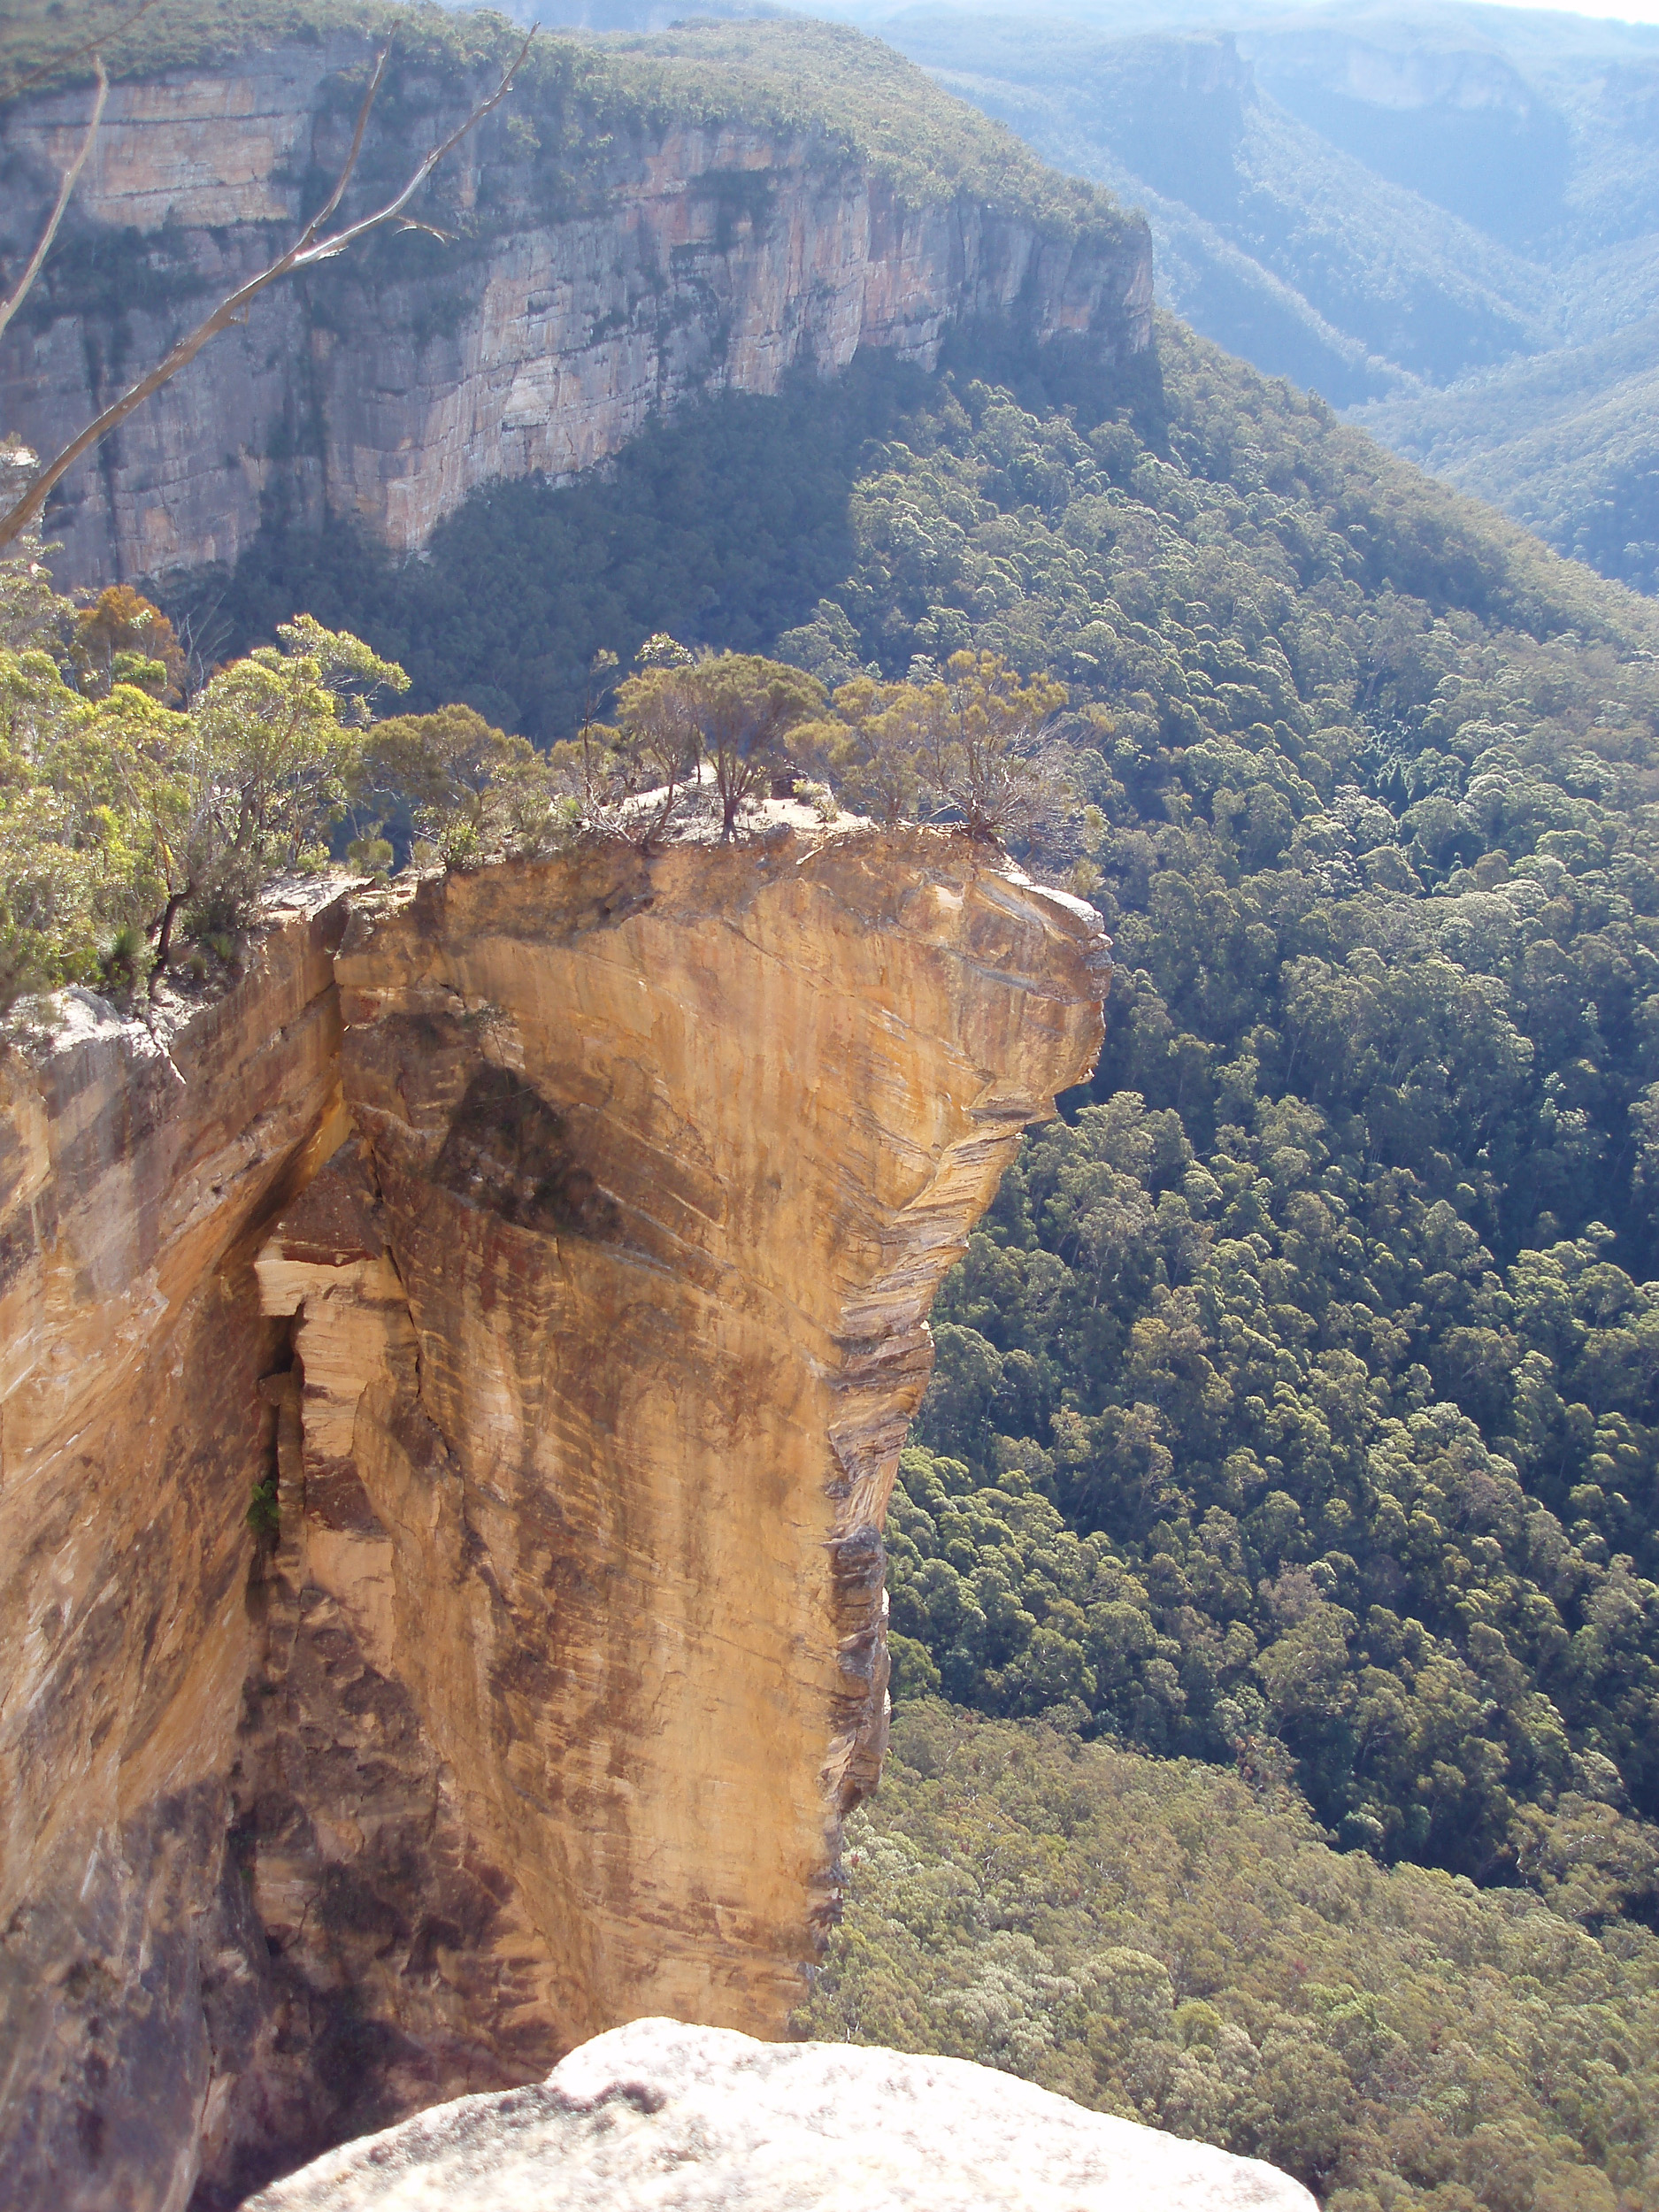 looking down into the grose valley at the hanging rock formation